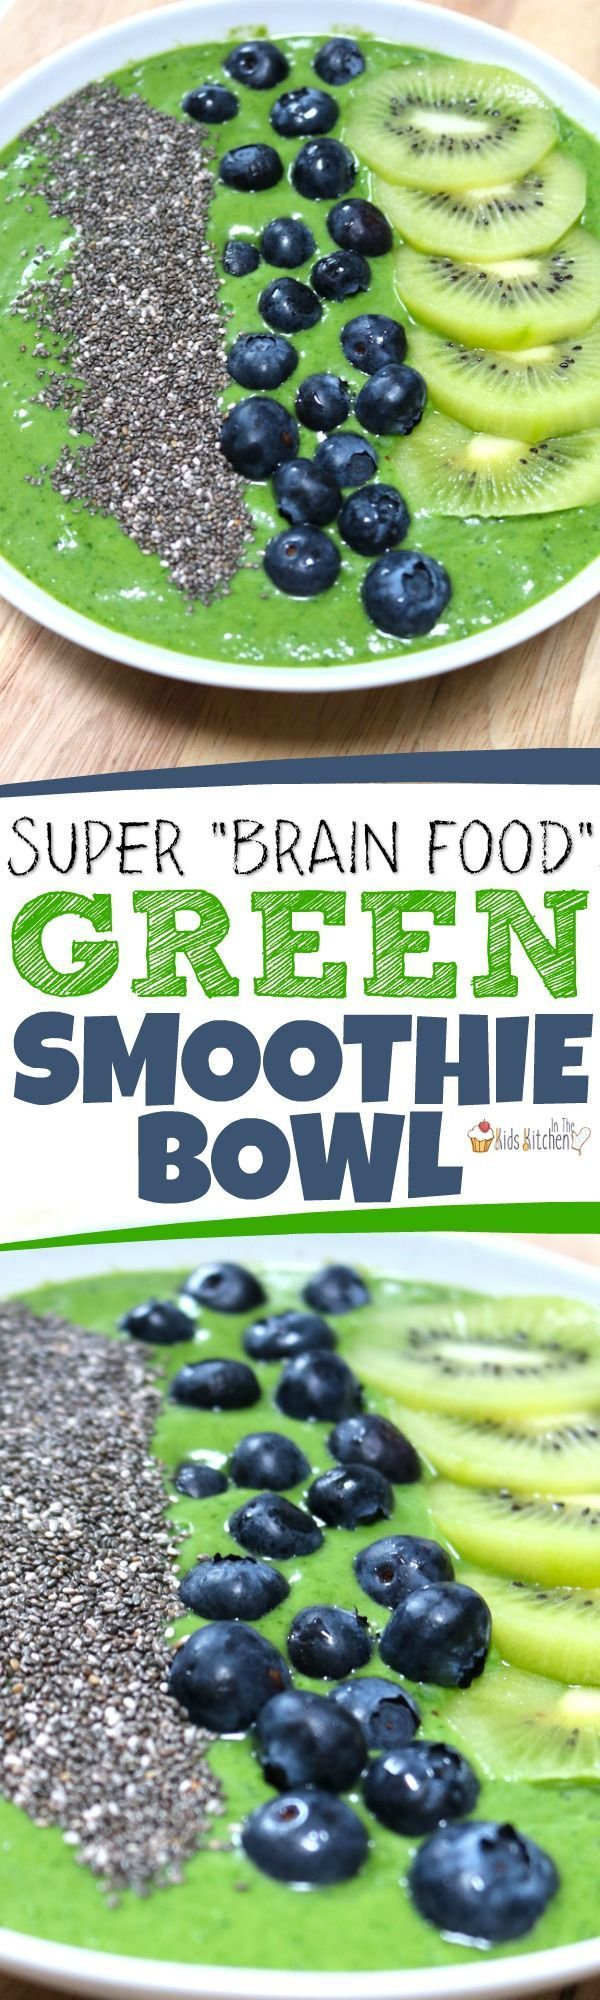 This Jungle Green Smoothie Bowl is a delicious brain-building treat! Kid-approved, packed with the goodness of greens, high in good fats, protein, & more!